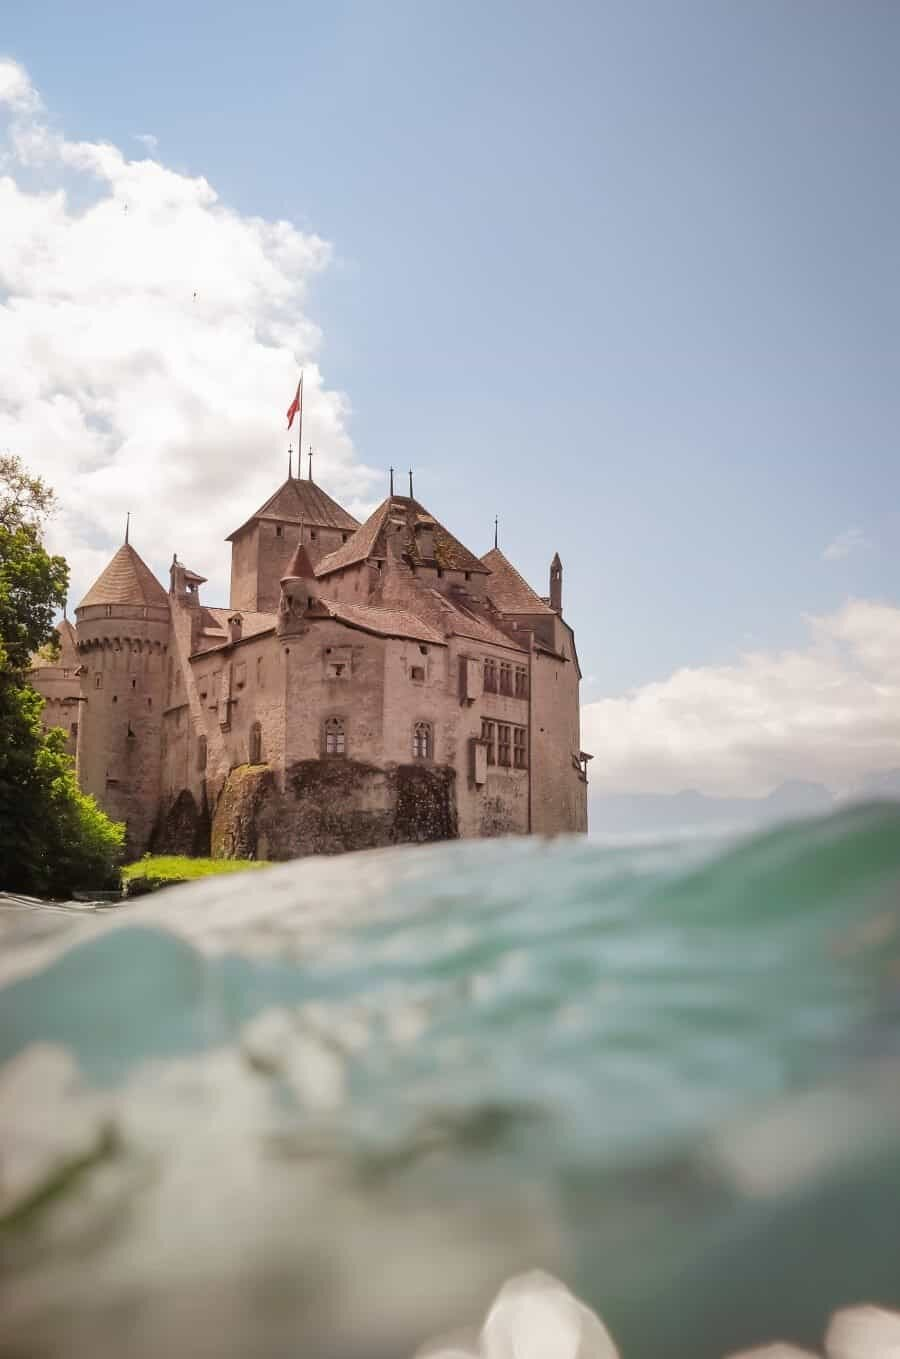 Chateau de Chillon, Switzerland Travel by The Wandering Lens 03